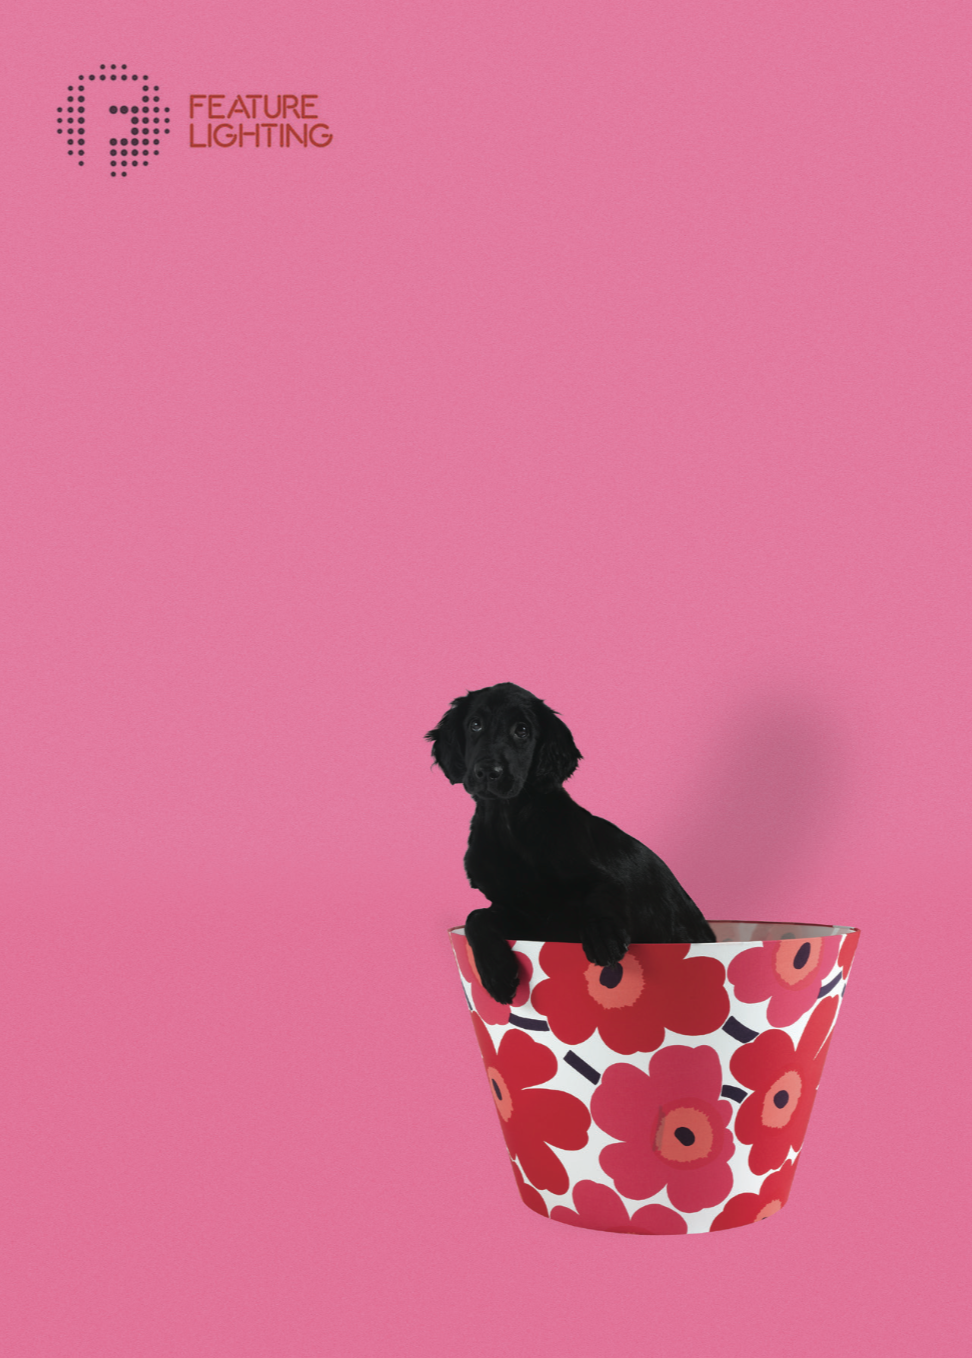 SKY - Sky the Long Haired Retriever configured a Scandinavian design classic lampshade in Marimekko Unikko Fabric. She usually prefers to sit in it though, as you can see.